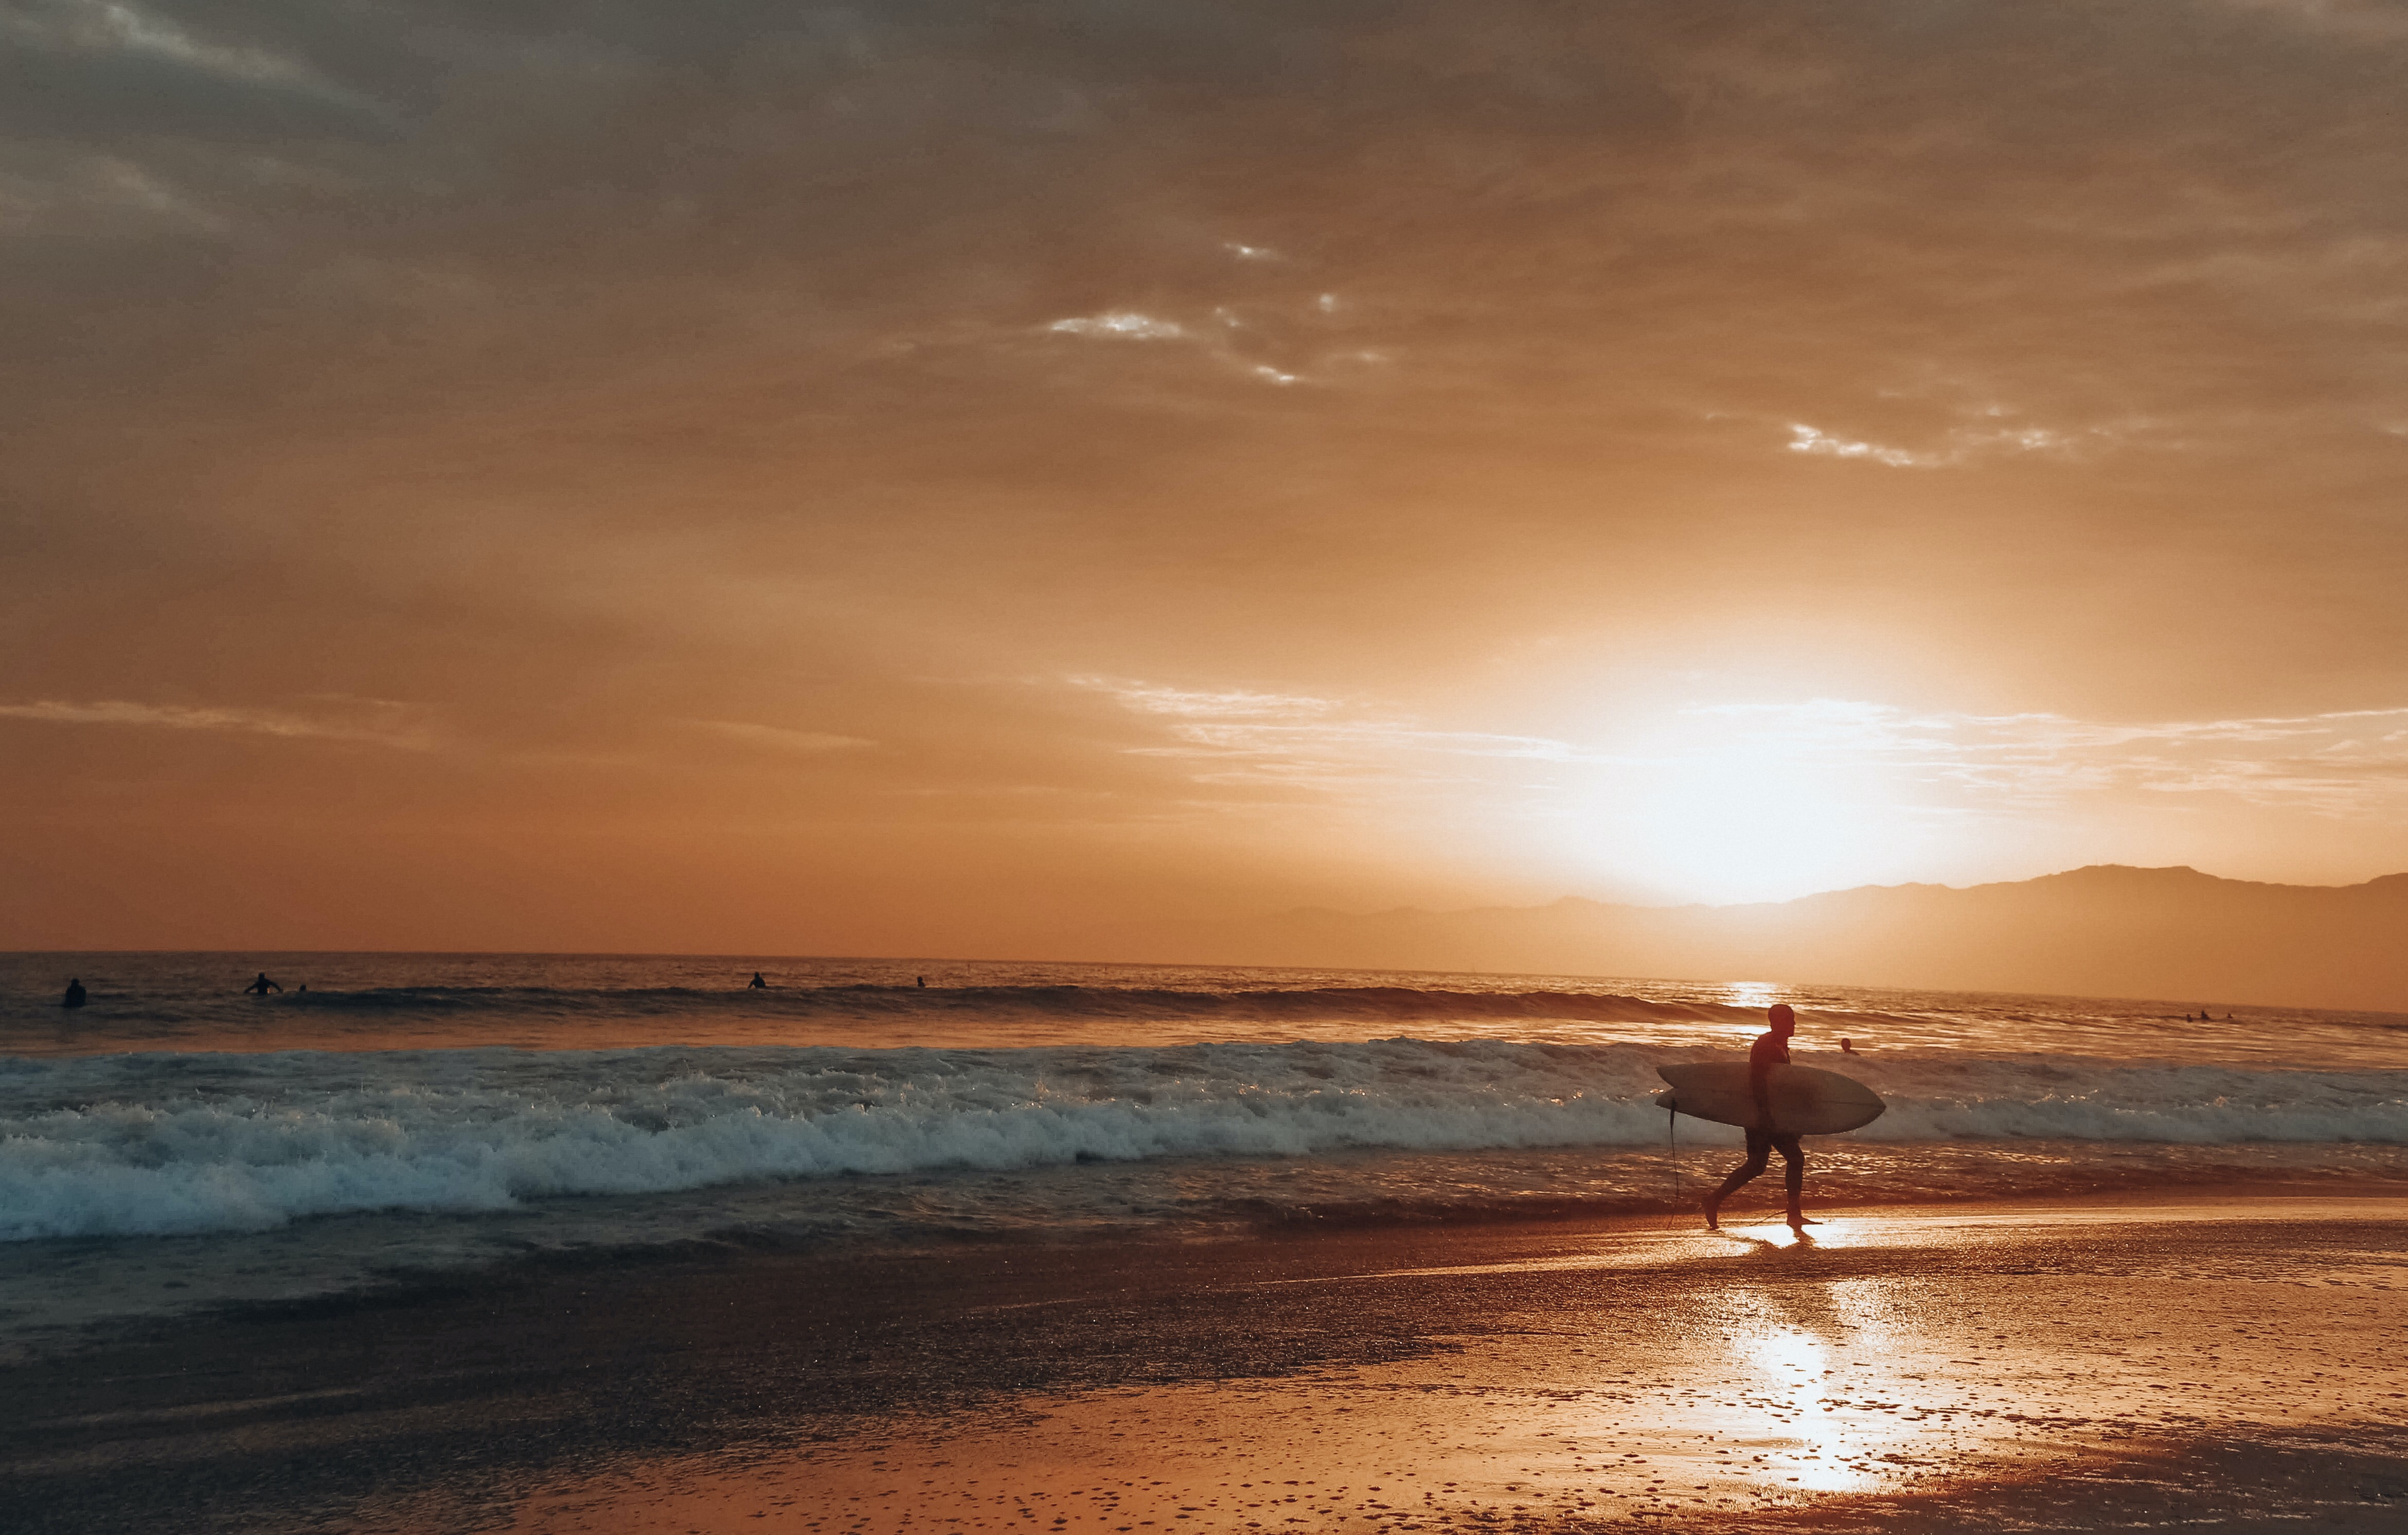 man carrying surfboard at the beach